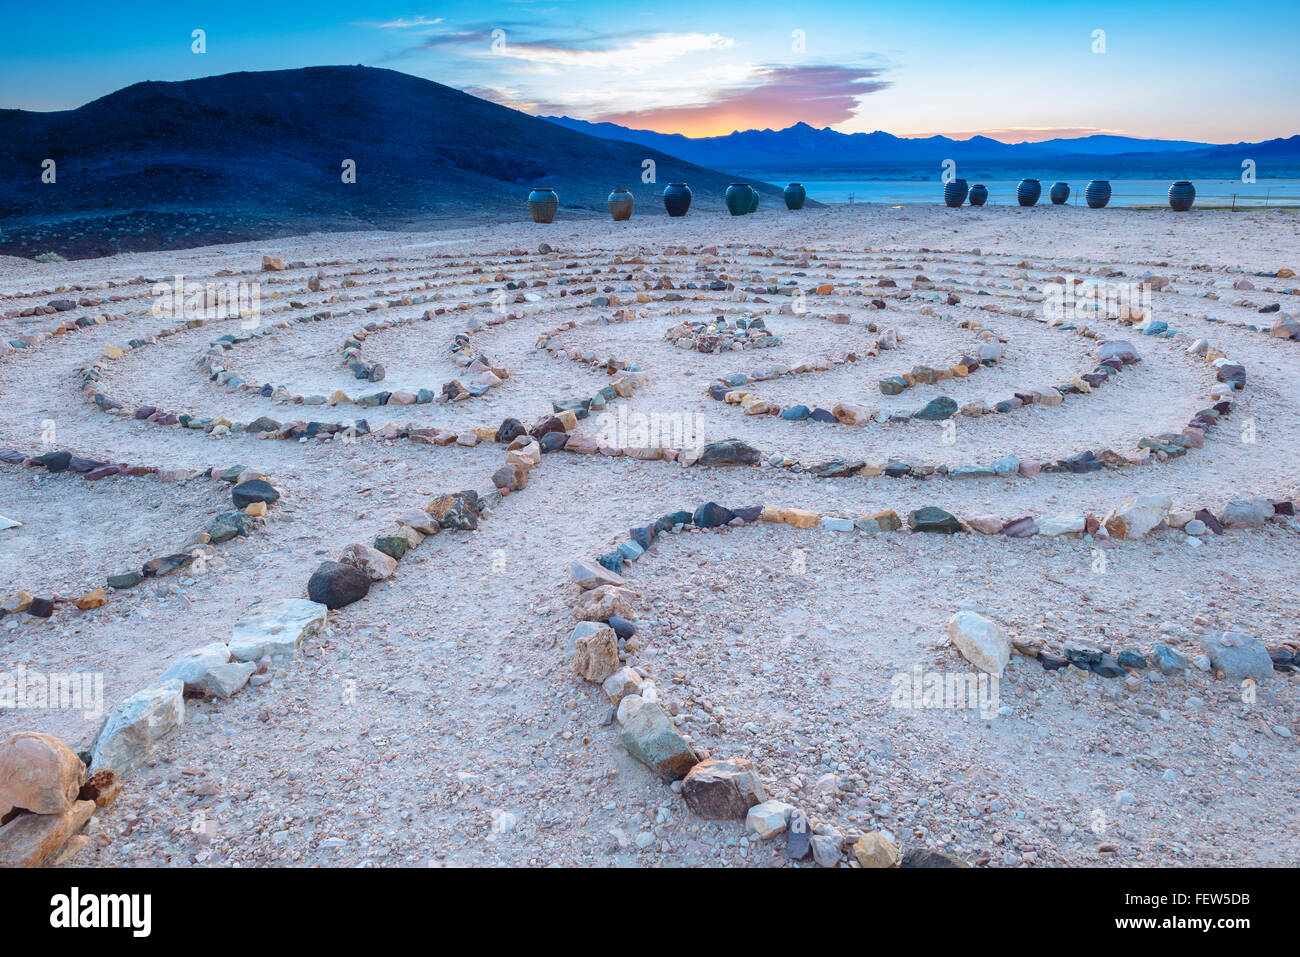 The Yaga Labyrinth, overlooking the small desert town of ...